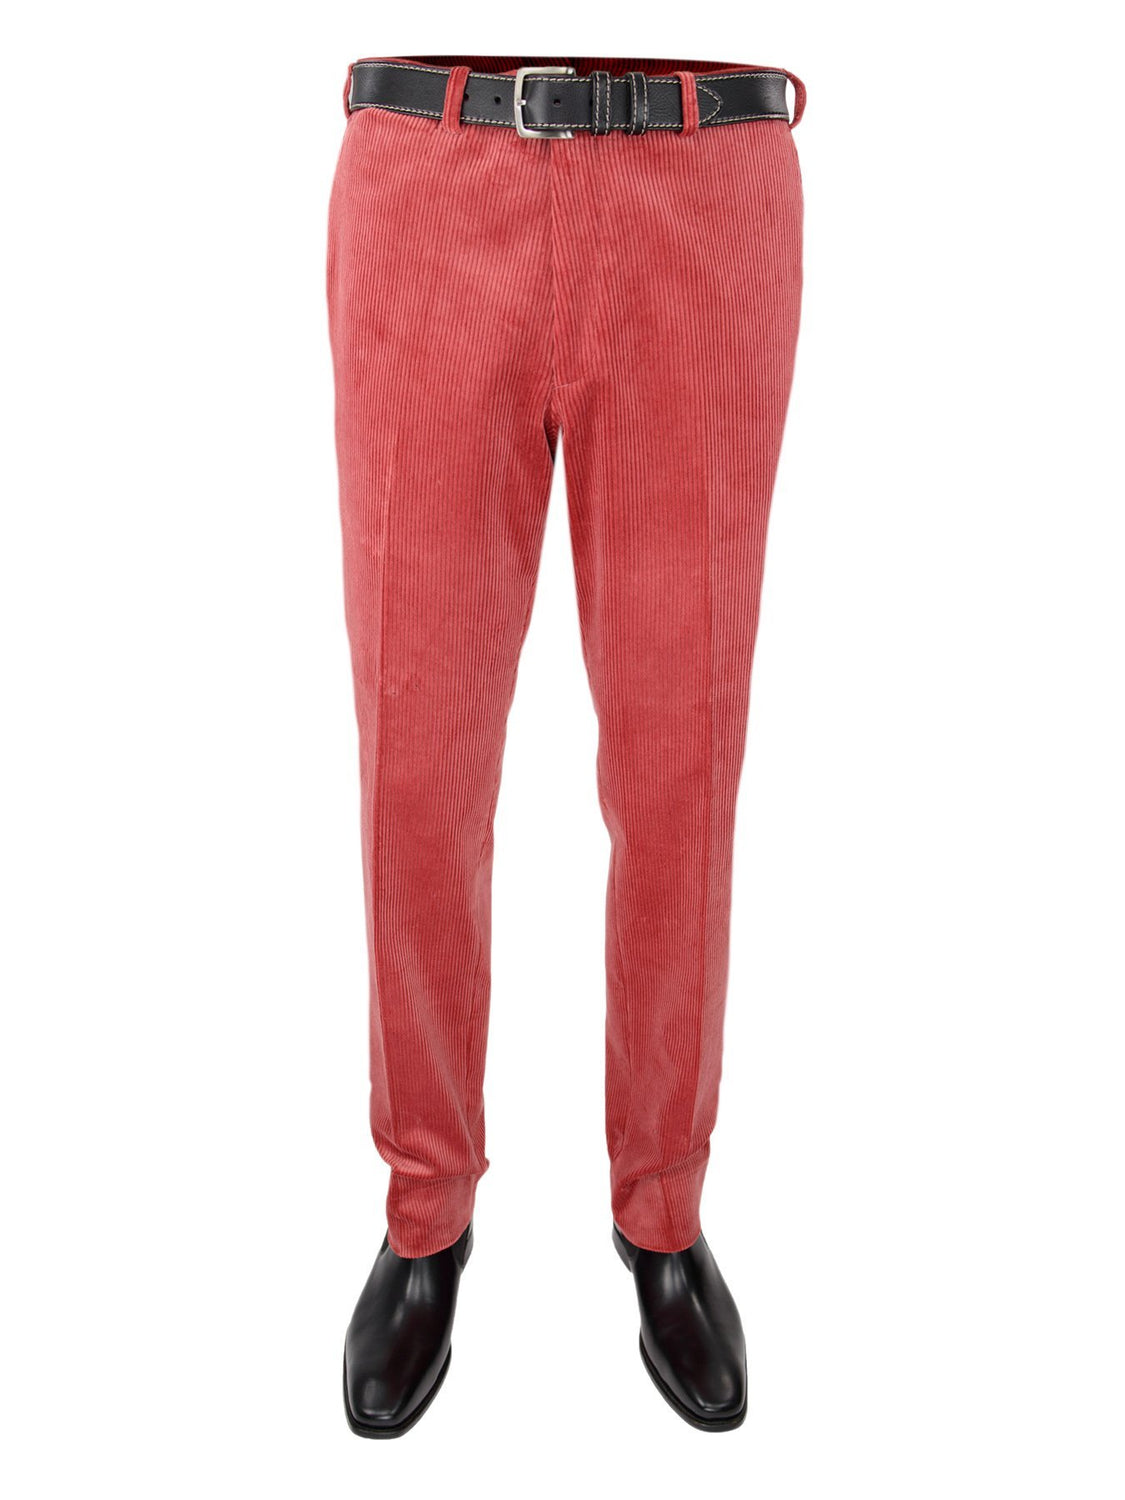 Hilditch & Key Corduroy Trousers